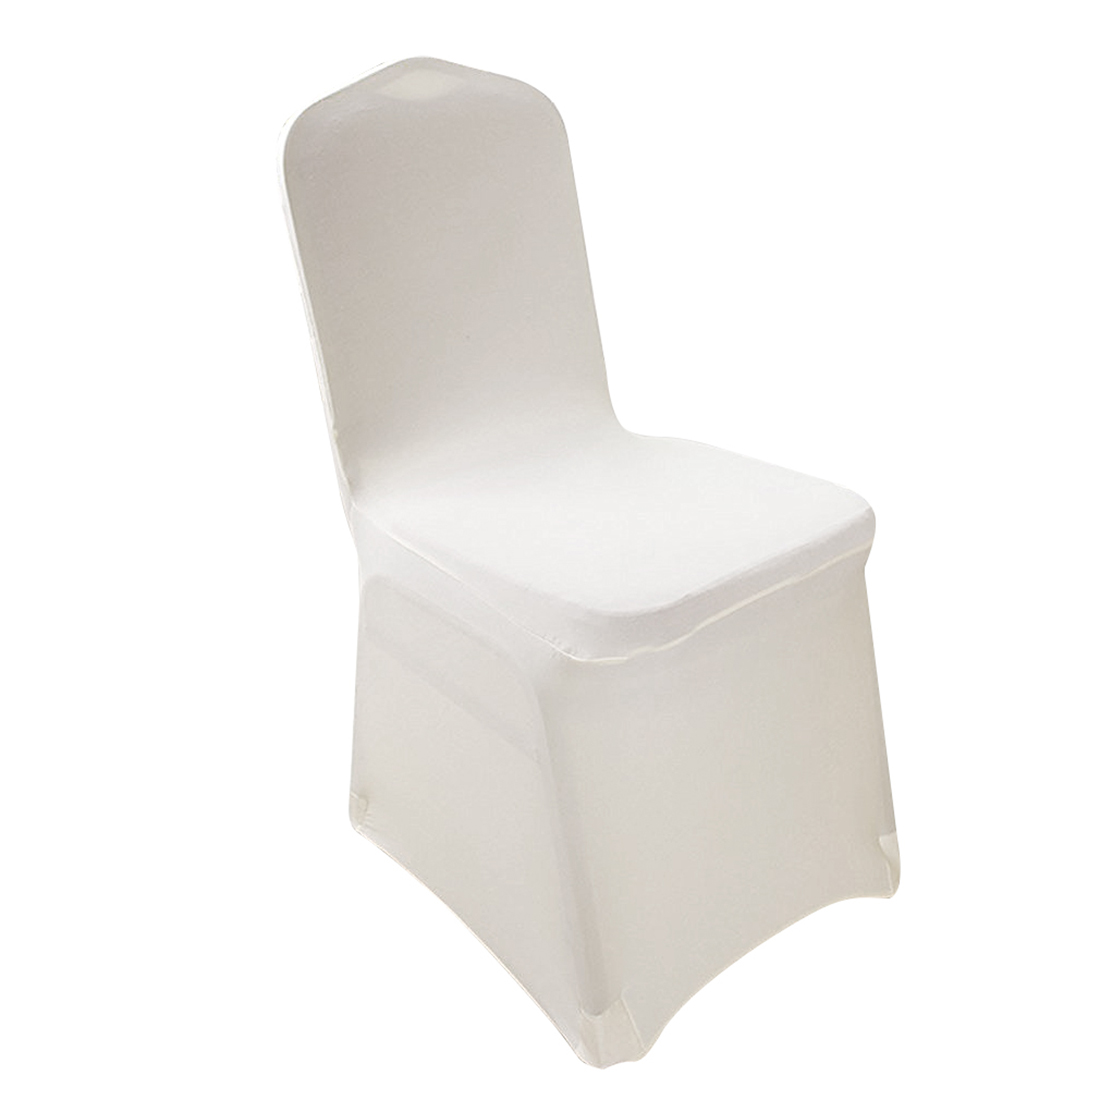 Hot gczw 2 pieces elegant stretch strap free chair covers bi elastic chair cover made of elastane for banquet hall